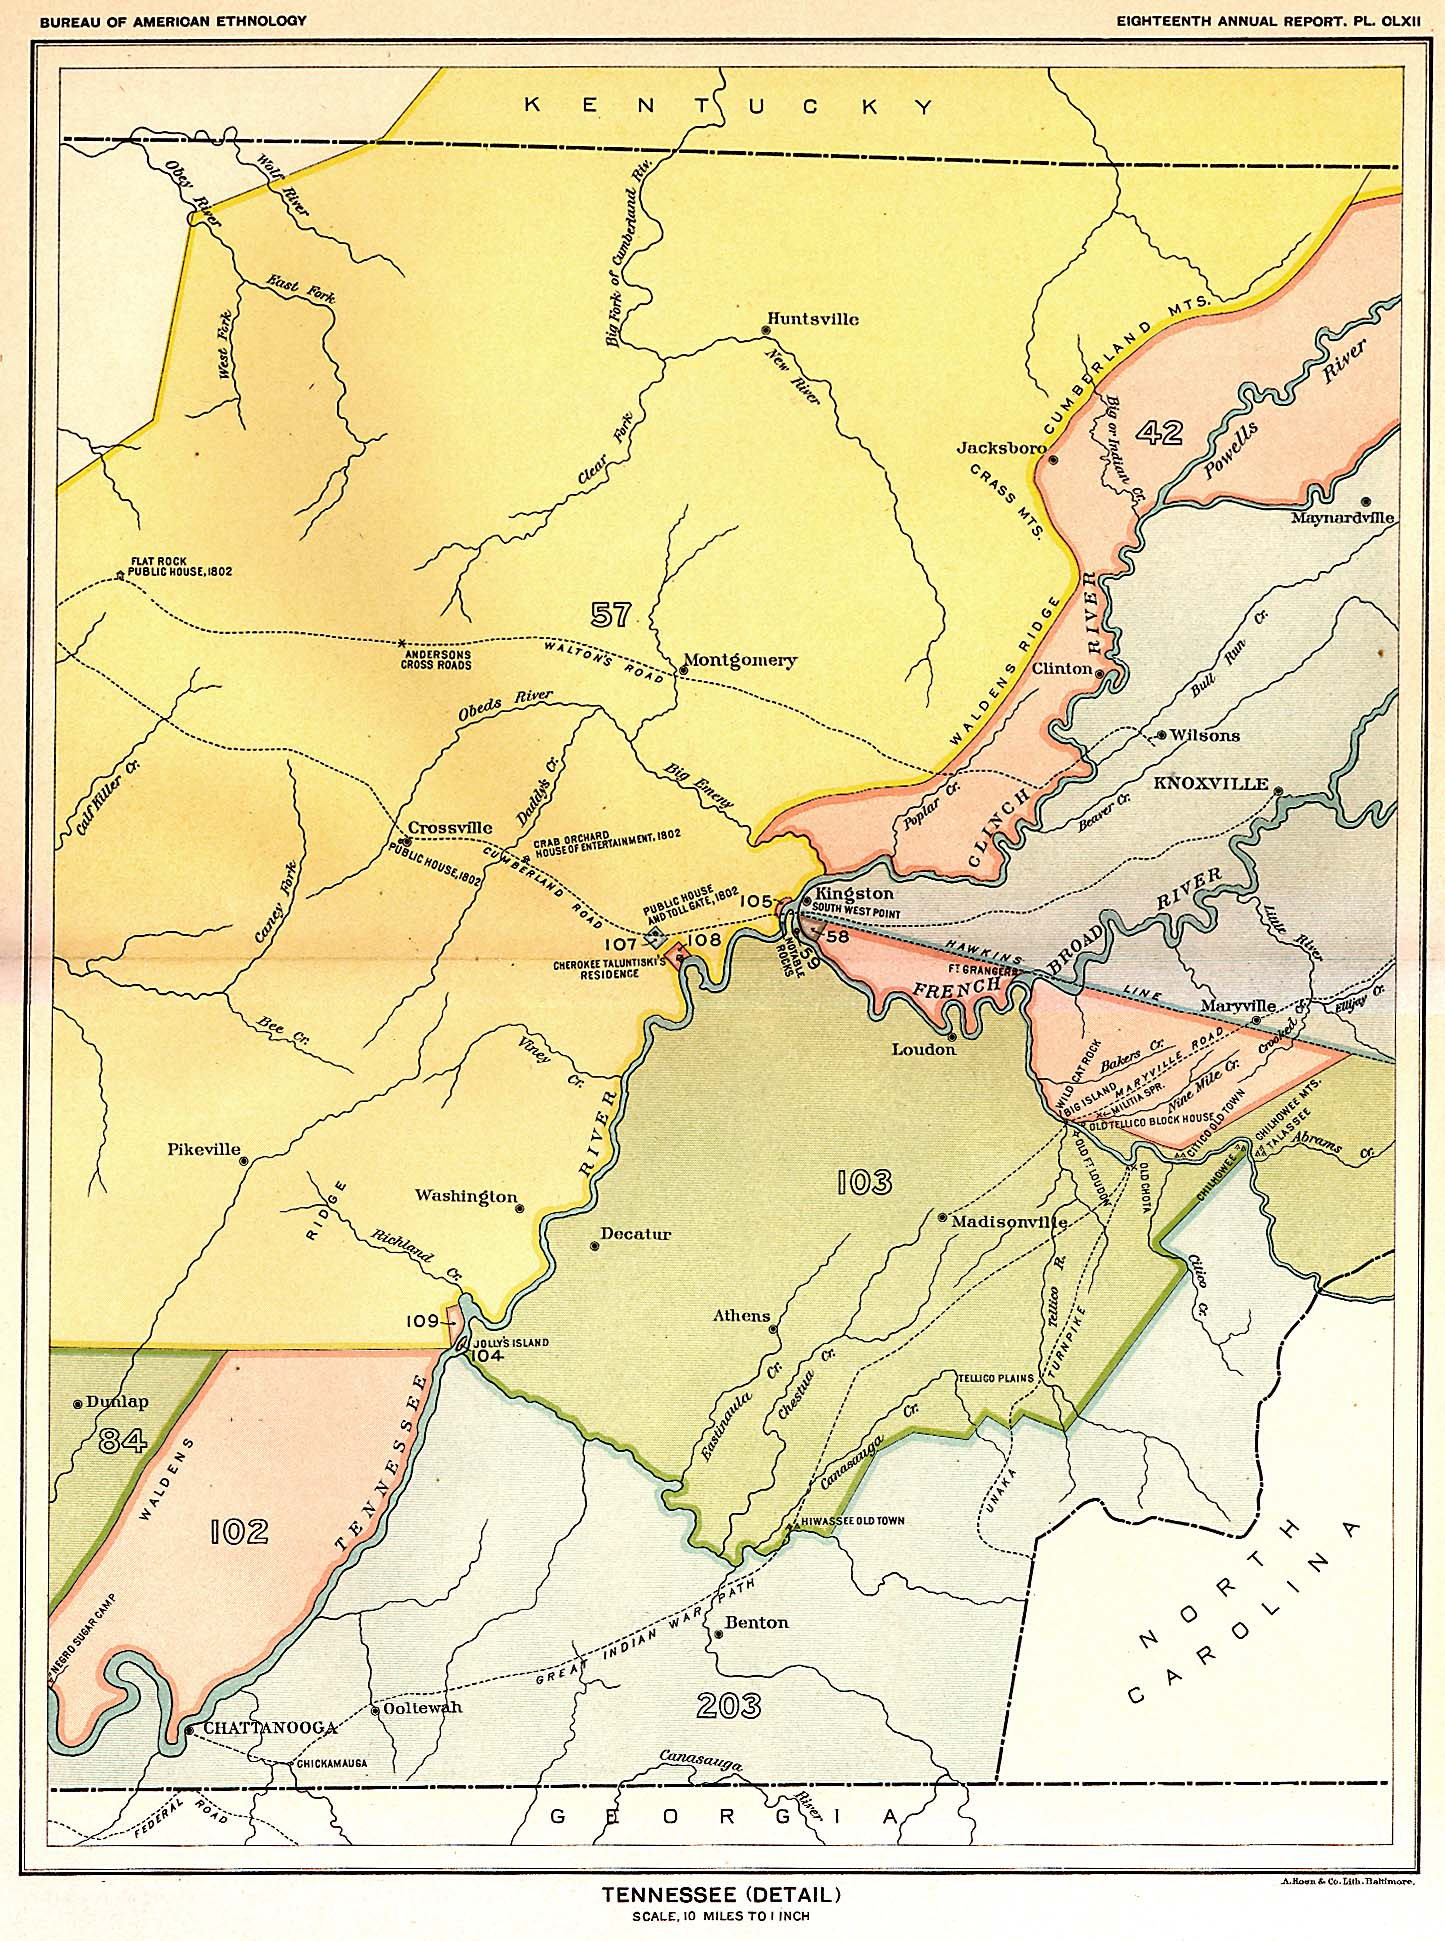 Indian Land Cessions In The U S Tennessee Detail Map